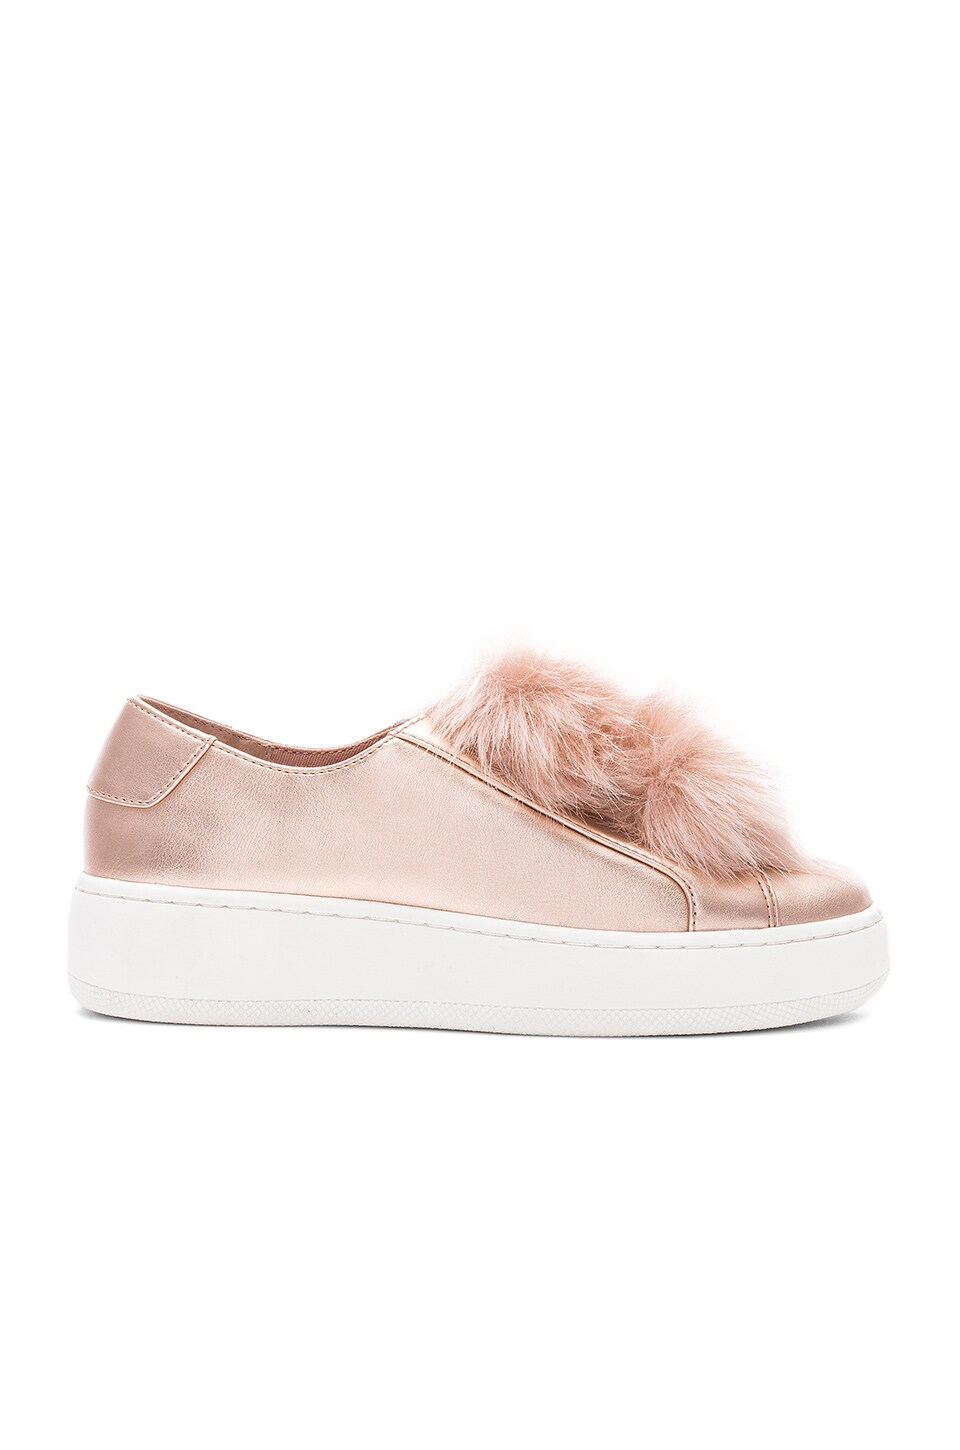 6a30a51a987 Steve Madden Breeze Faux Fur Sneaker in Rose Gold | REVOLVE